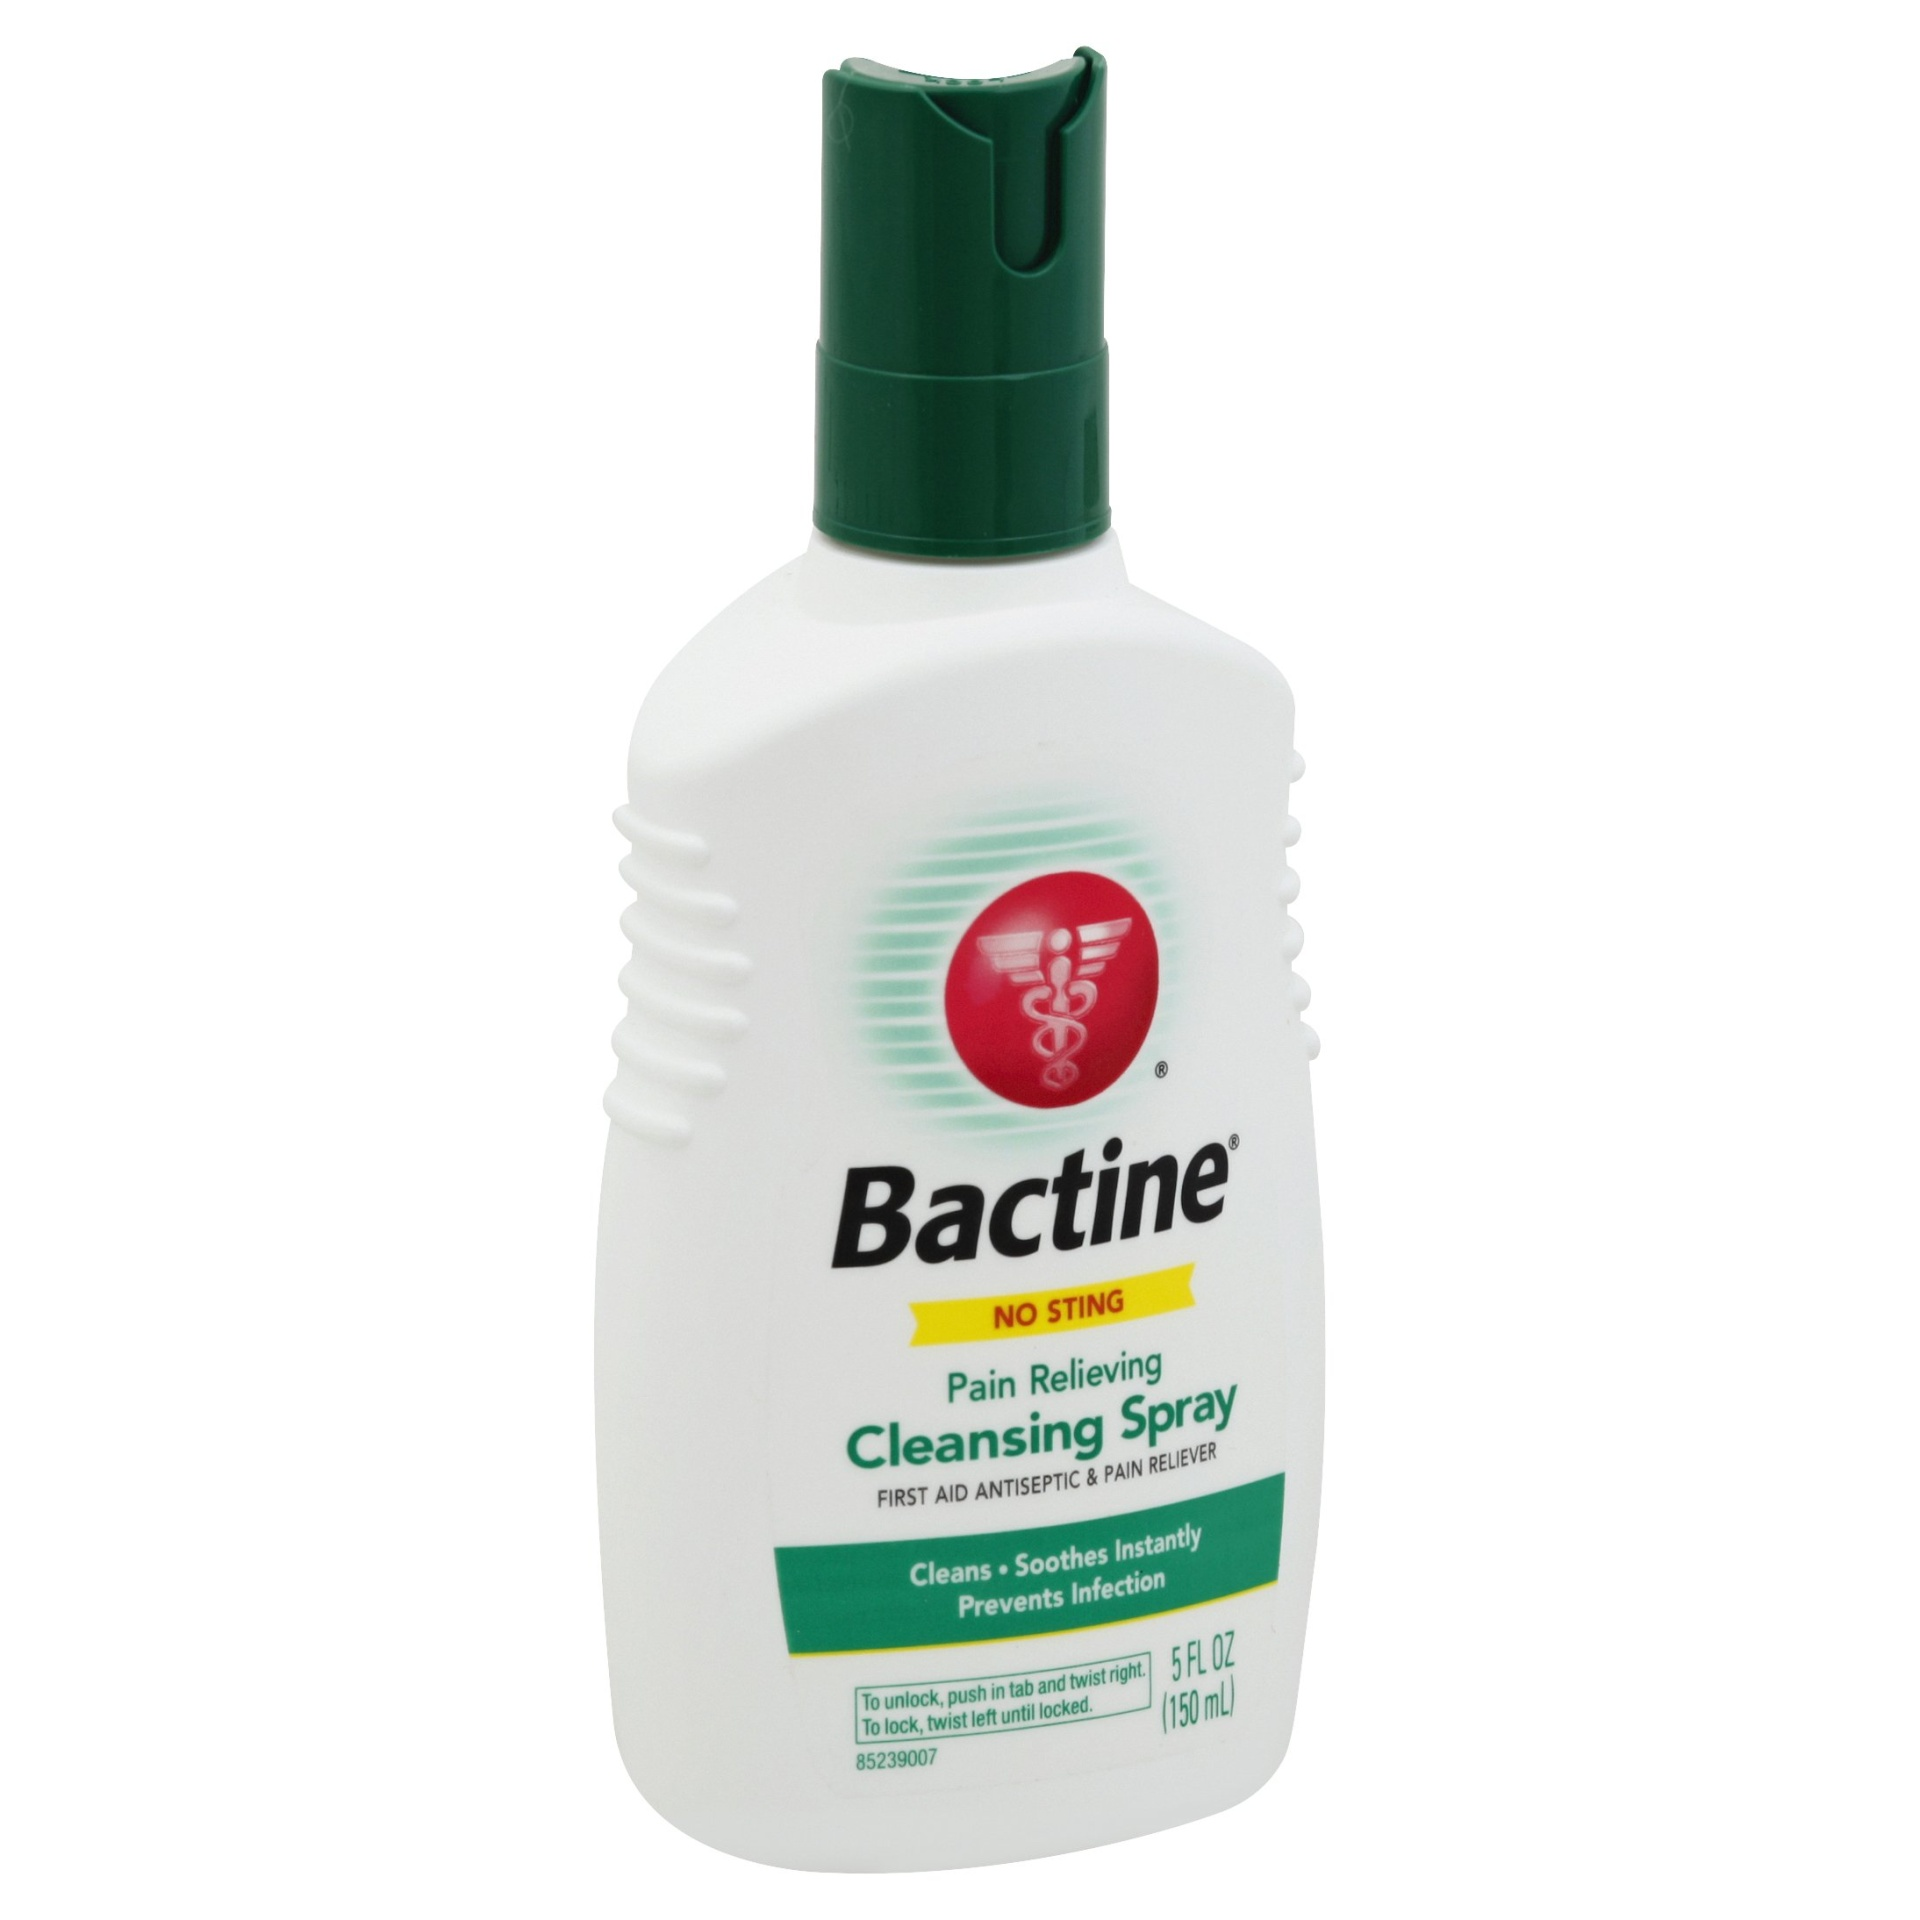 slide 1 of 1, Bactine Pain Relieving Cleansing Spray,